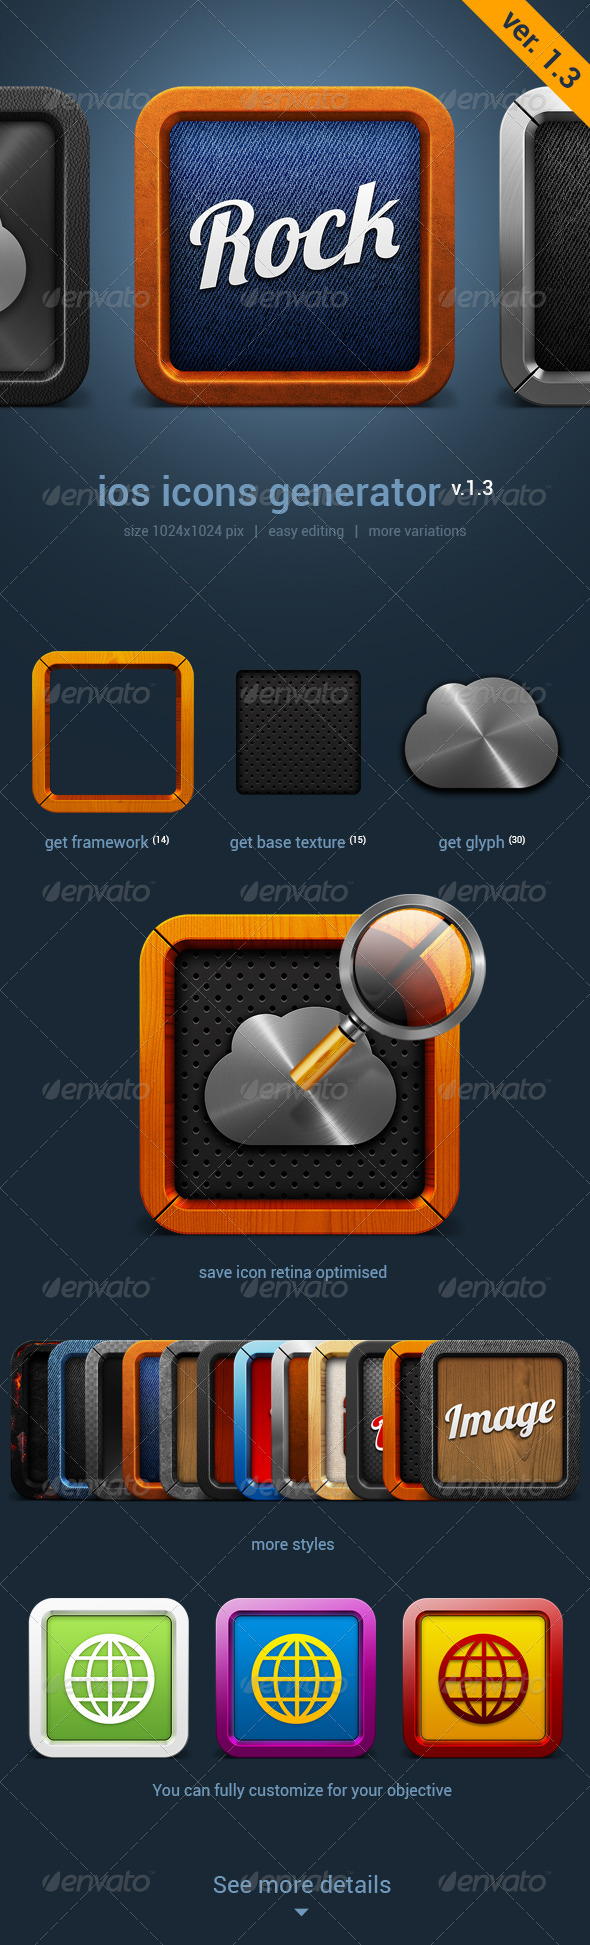 GraphicRiver iOS Icon Generator V.1.3 4493625